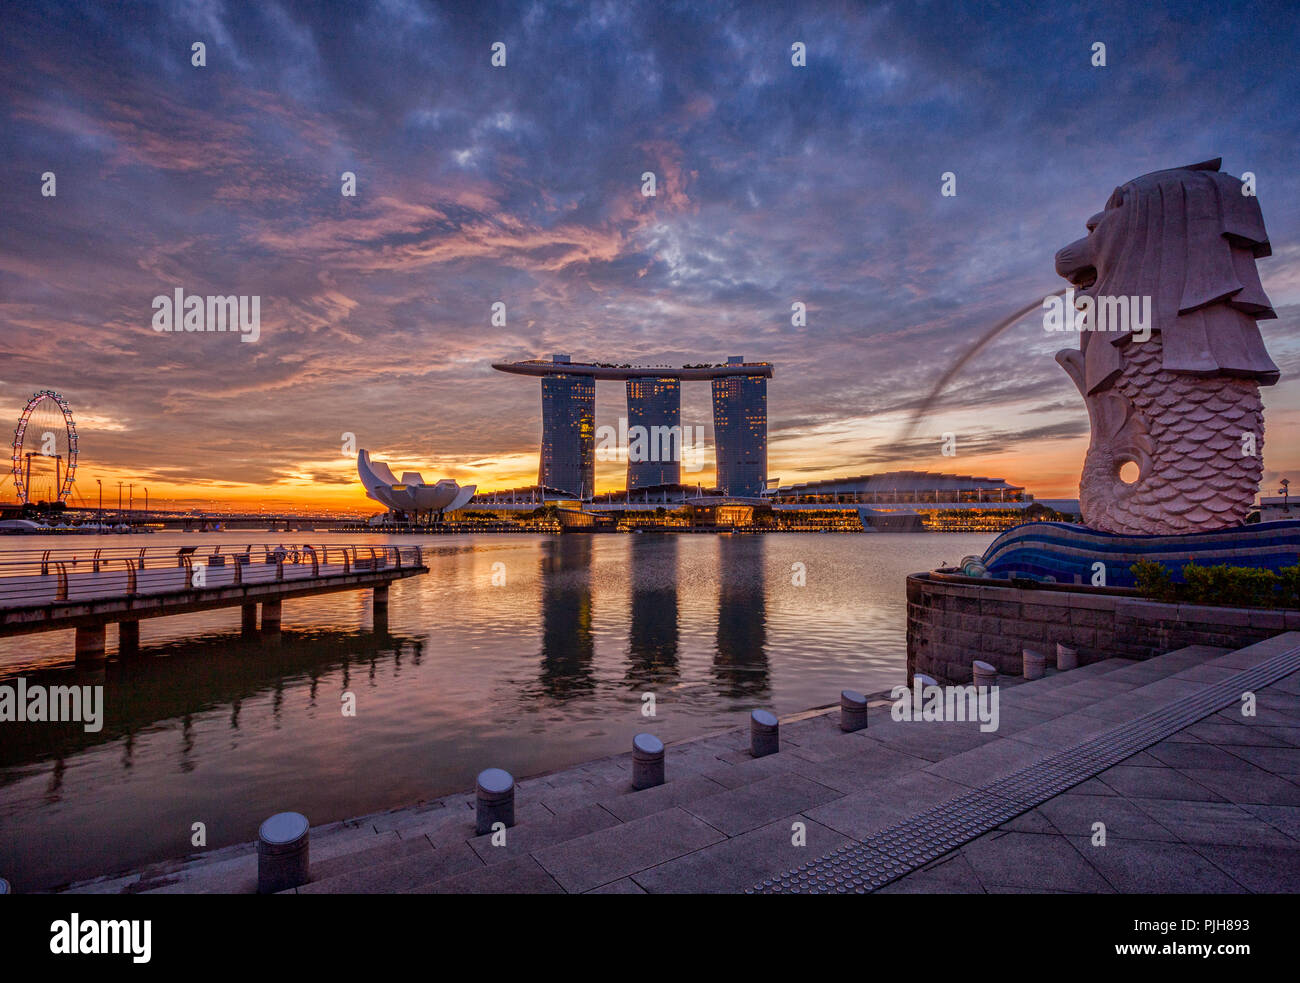 Singapore skyline at sunrise, with the Merlion, the Marina Bay Sands, the Art and Science Museum and the Singapore Flyer, all under a dramatic sky. - Stock Image